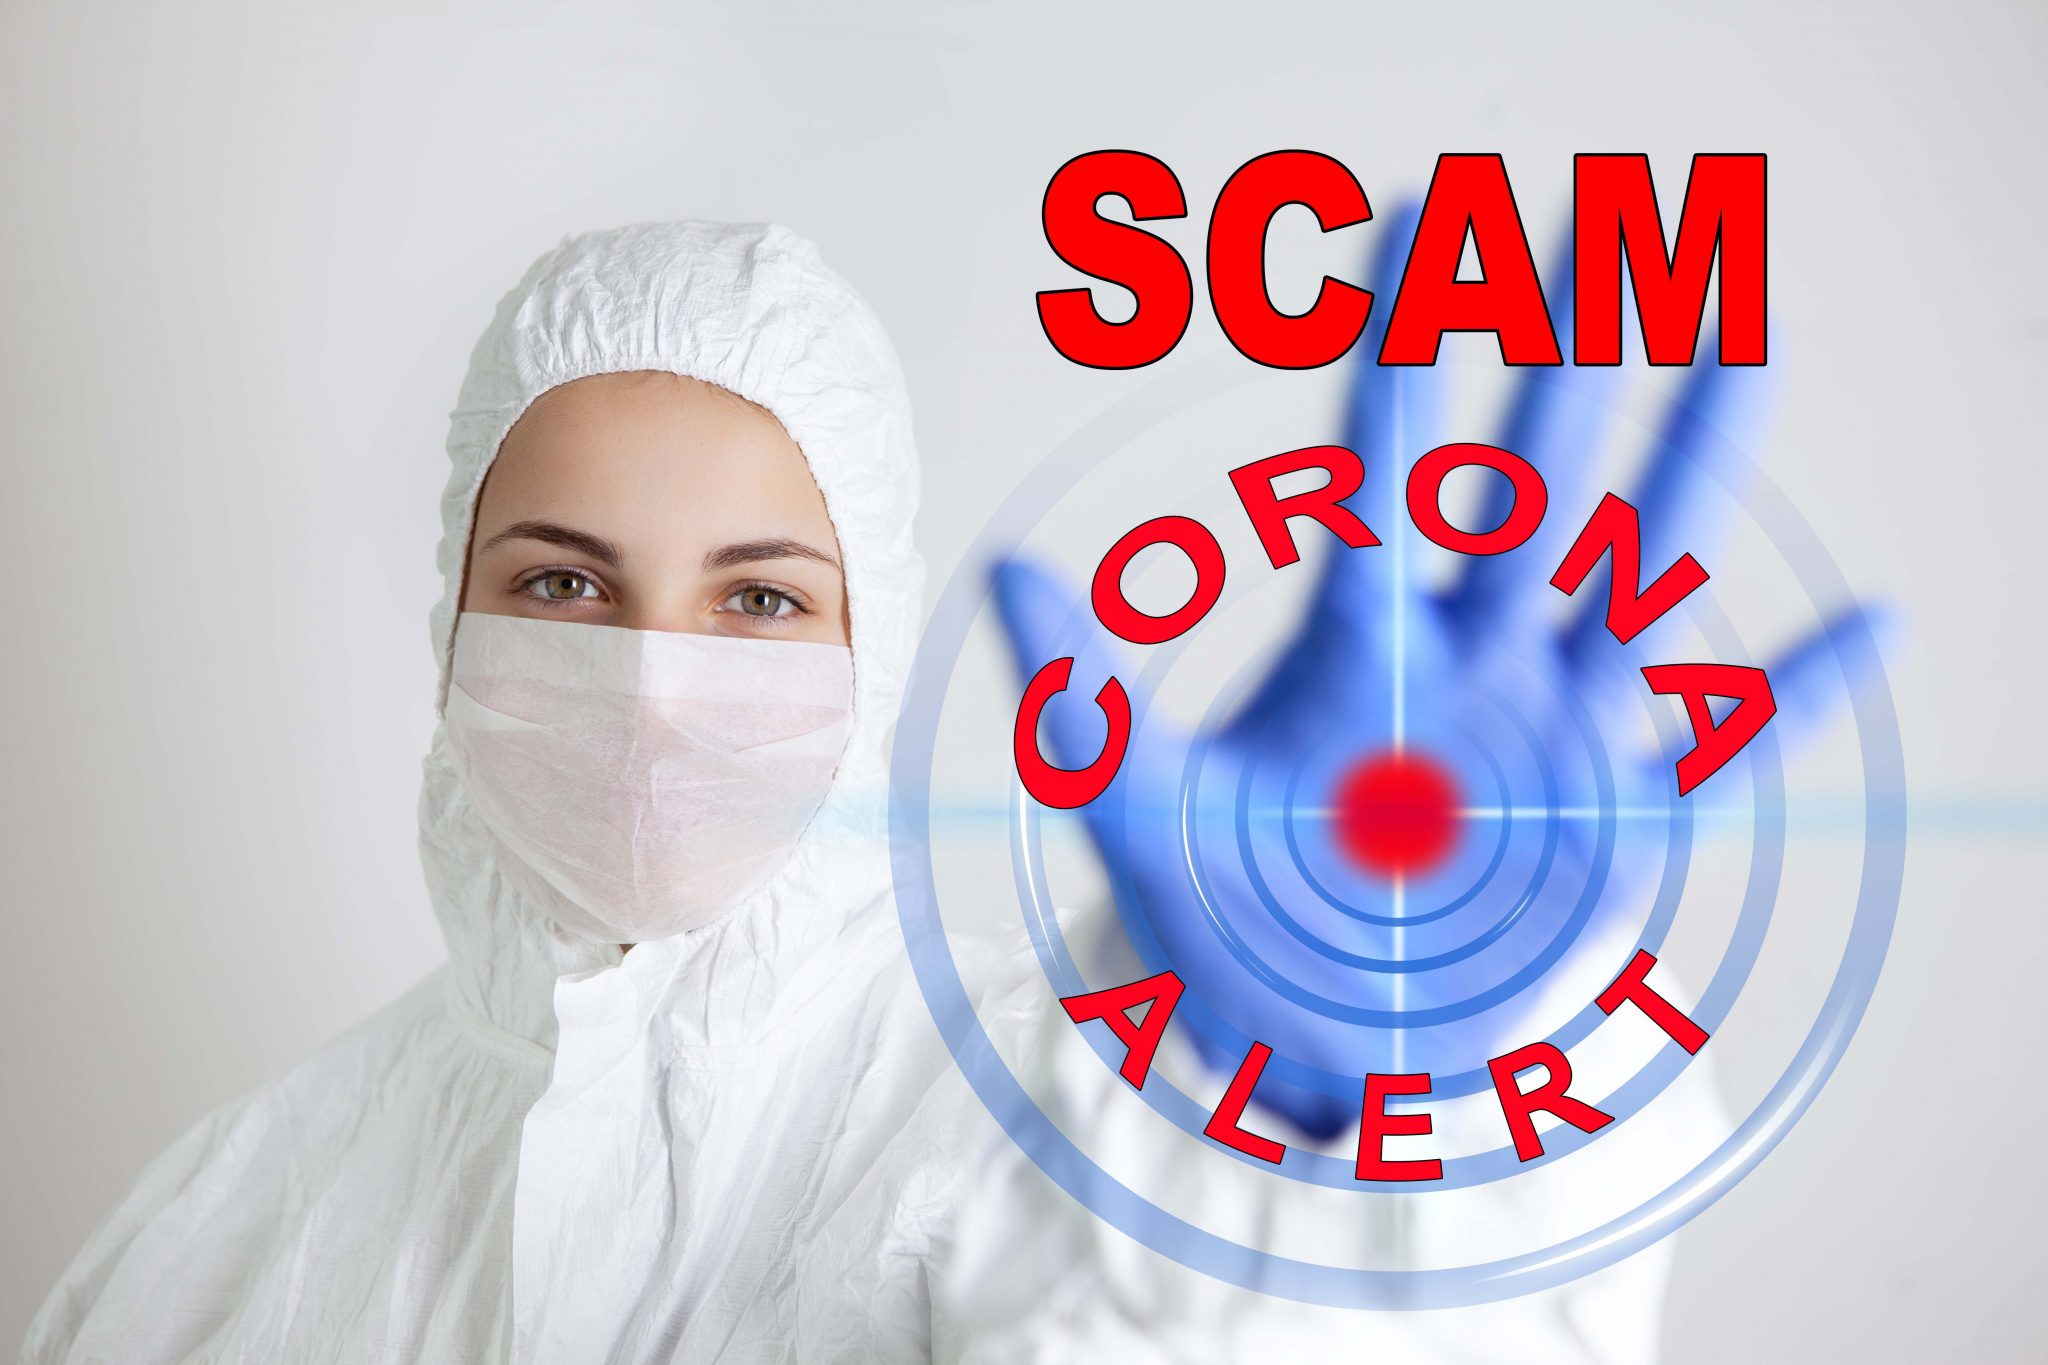 Health care person holding up hand with words Scam corona alert